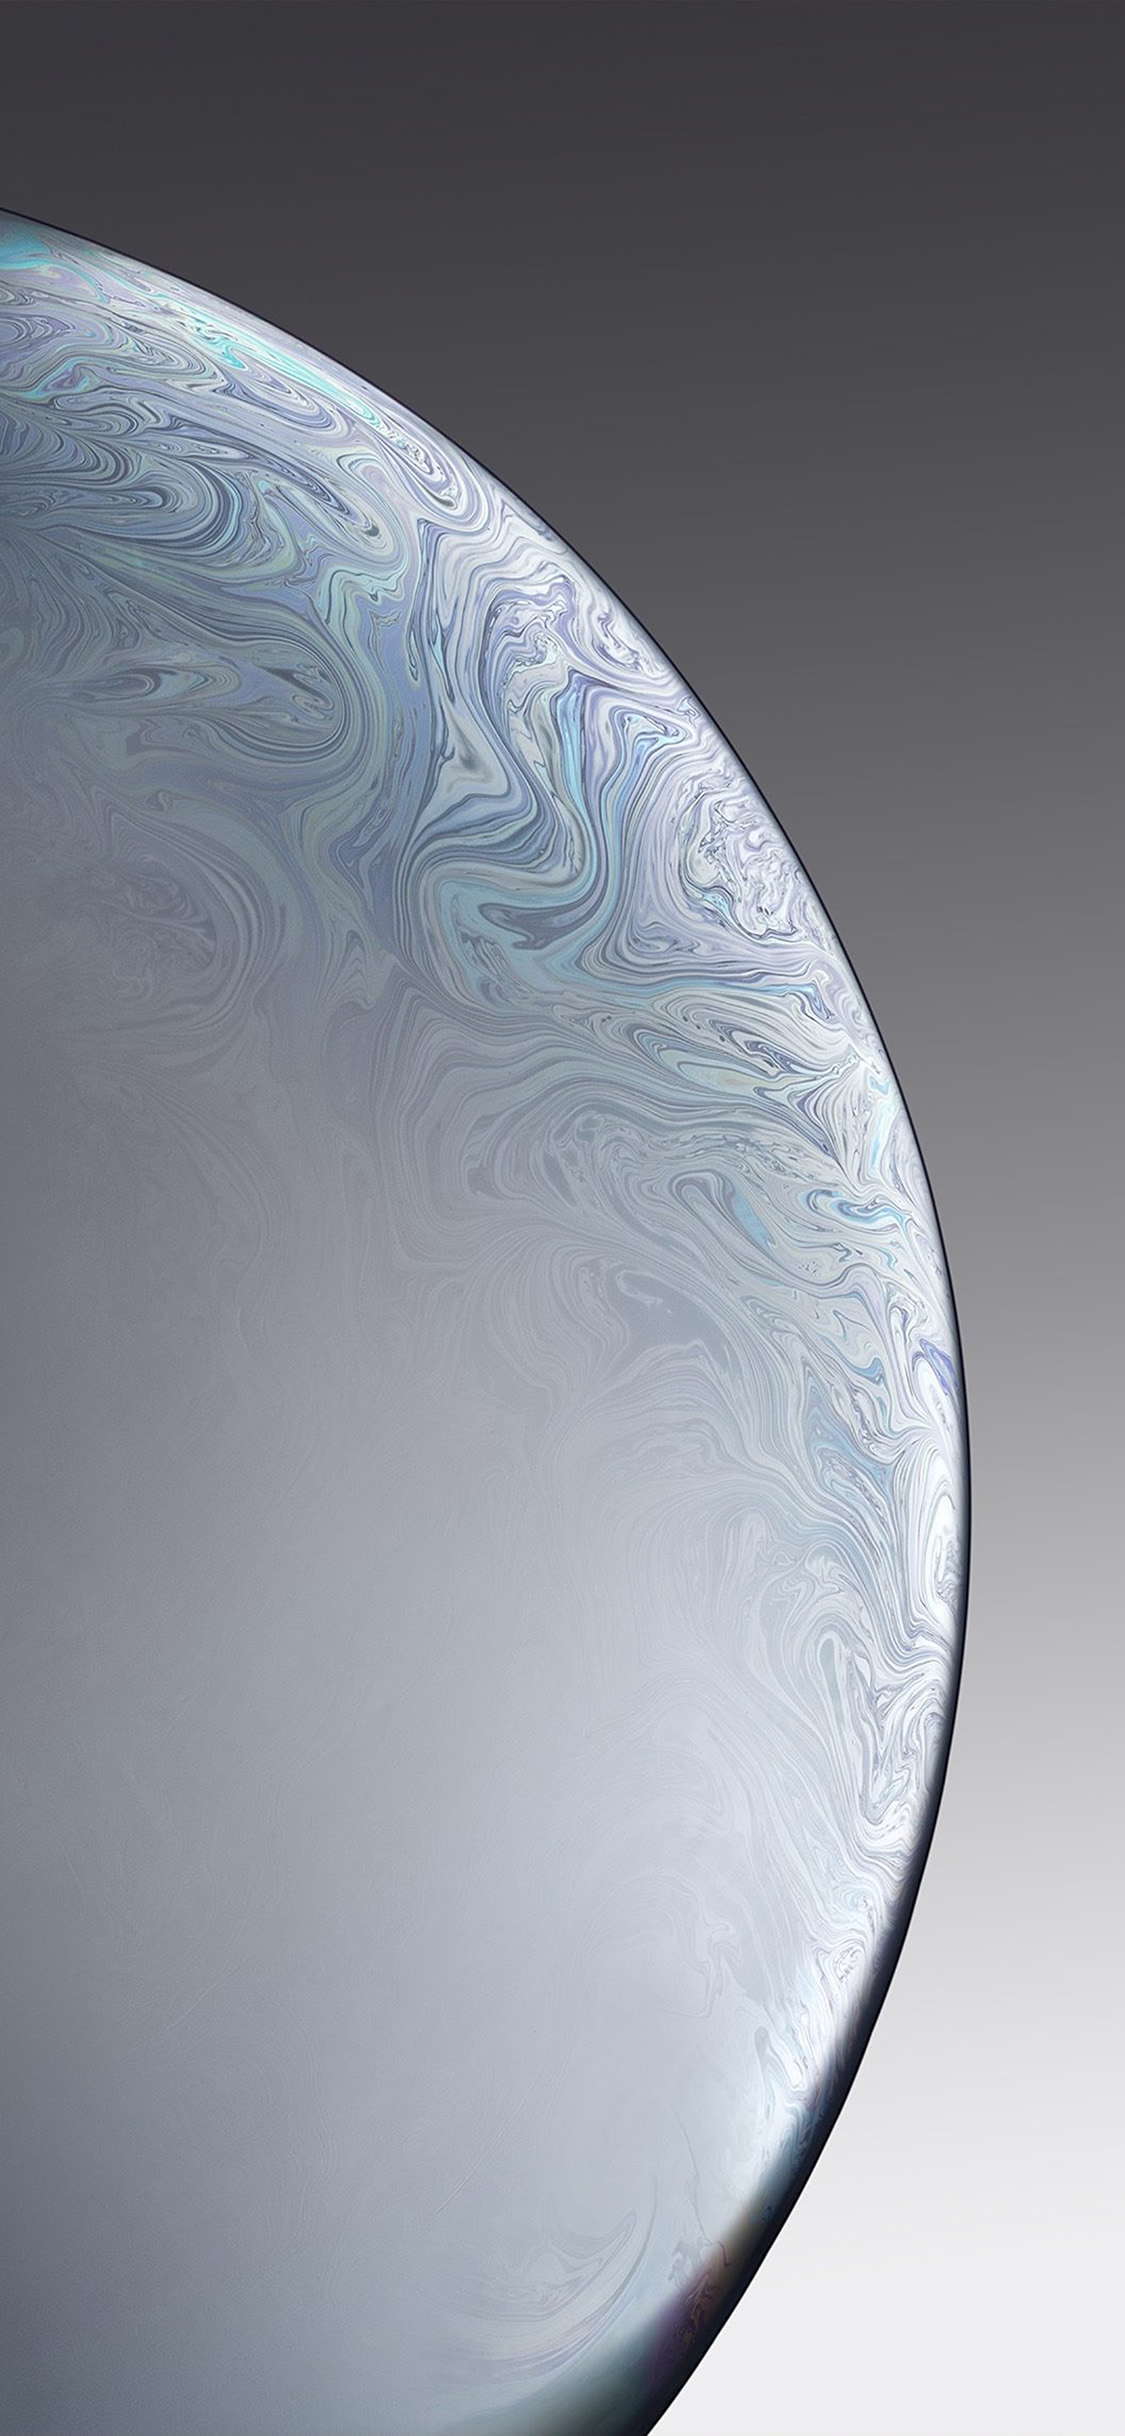 iPhonexpapers.com-Apple-iPhone-wallpaper-bg40-apple-iphone-xs-space-official-art-gray-white-bubble